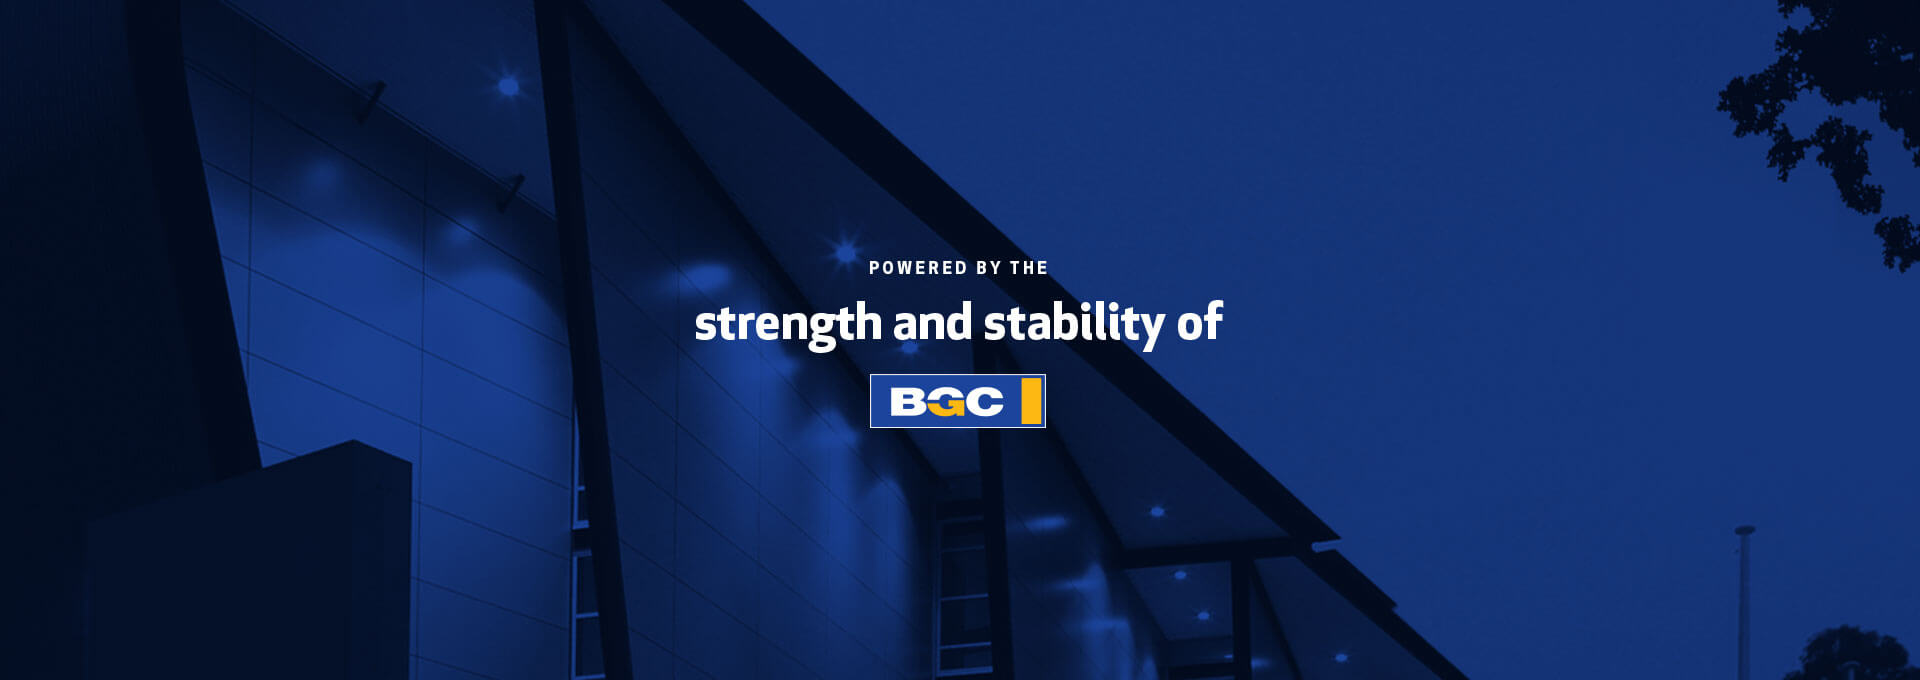 Powered by the Strength and Stability of BGC